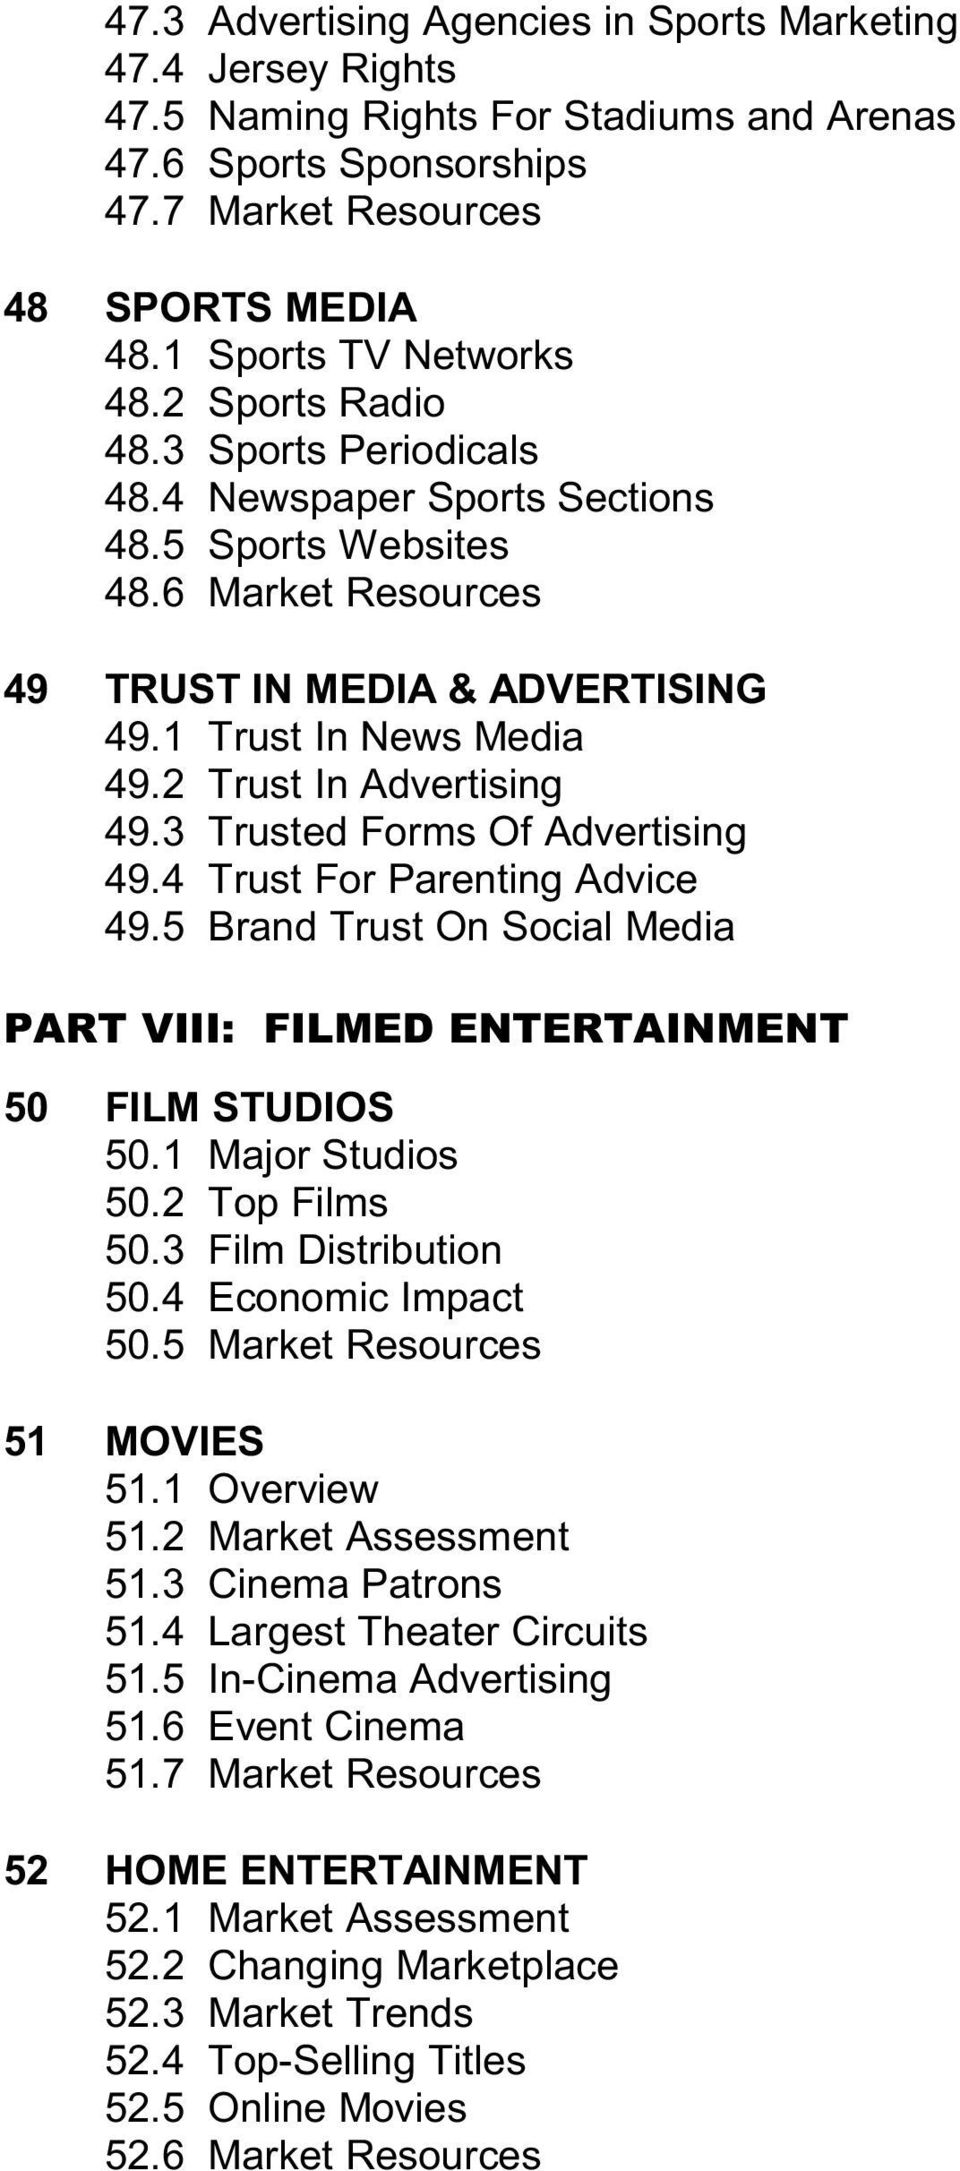 3 Trusted Forms Of Advertising 49.4 Trust For Parenting Advice 49.5 Brand Trust On Social Media PART VIII: FILMED ENTERTAINMENT 50 FILM STUDIOS 50.1 Major Studios 50.2 Top Films 50.